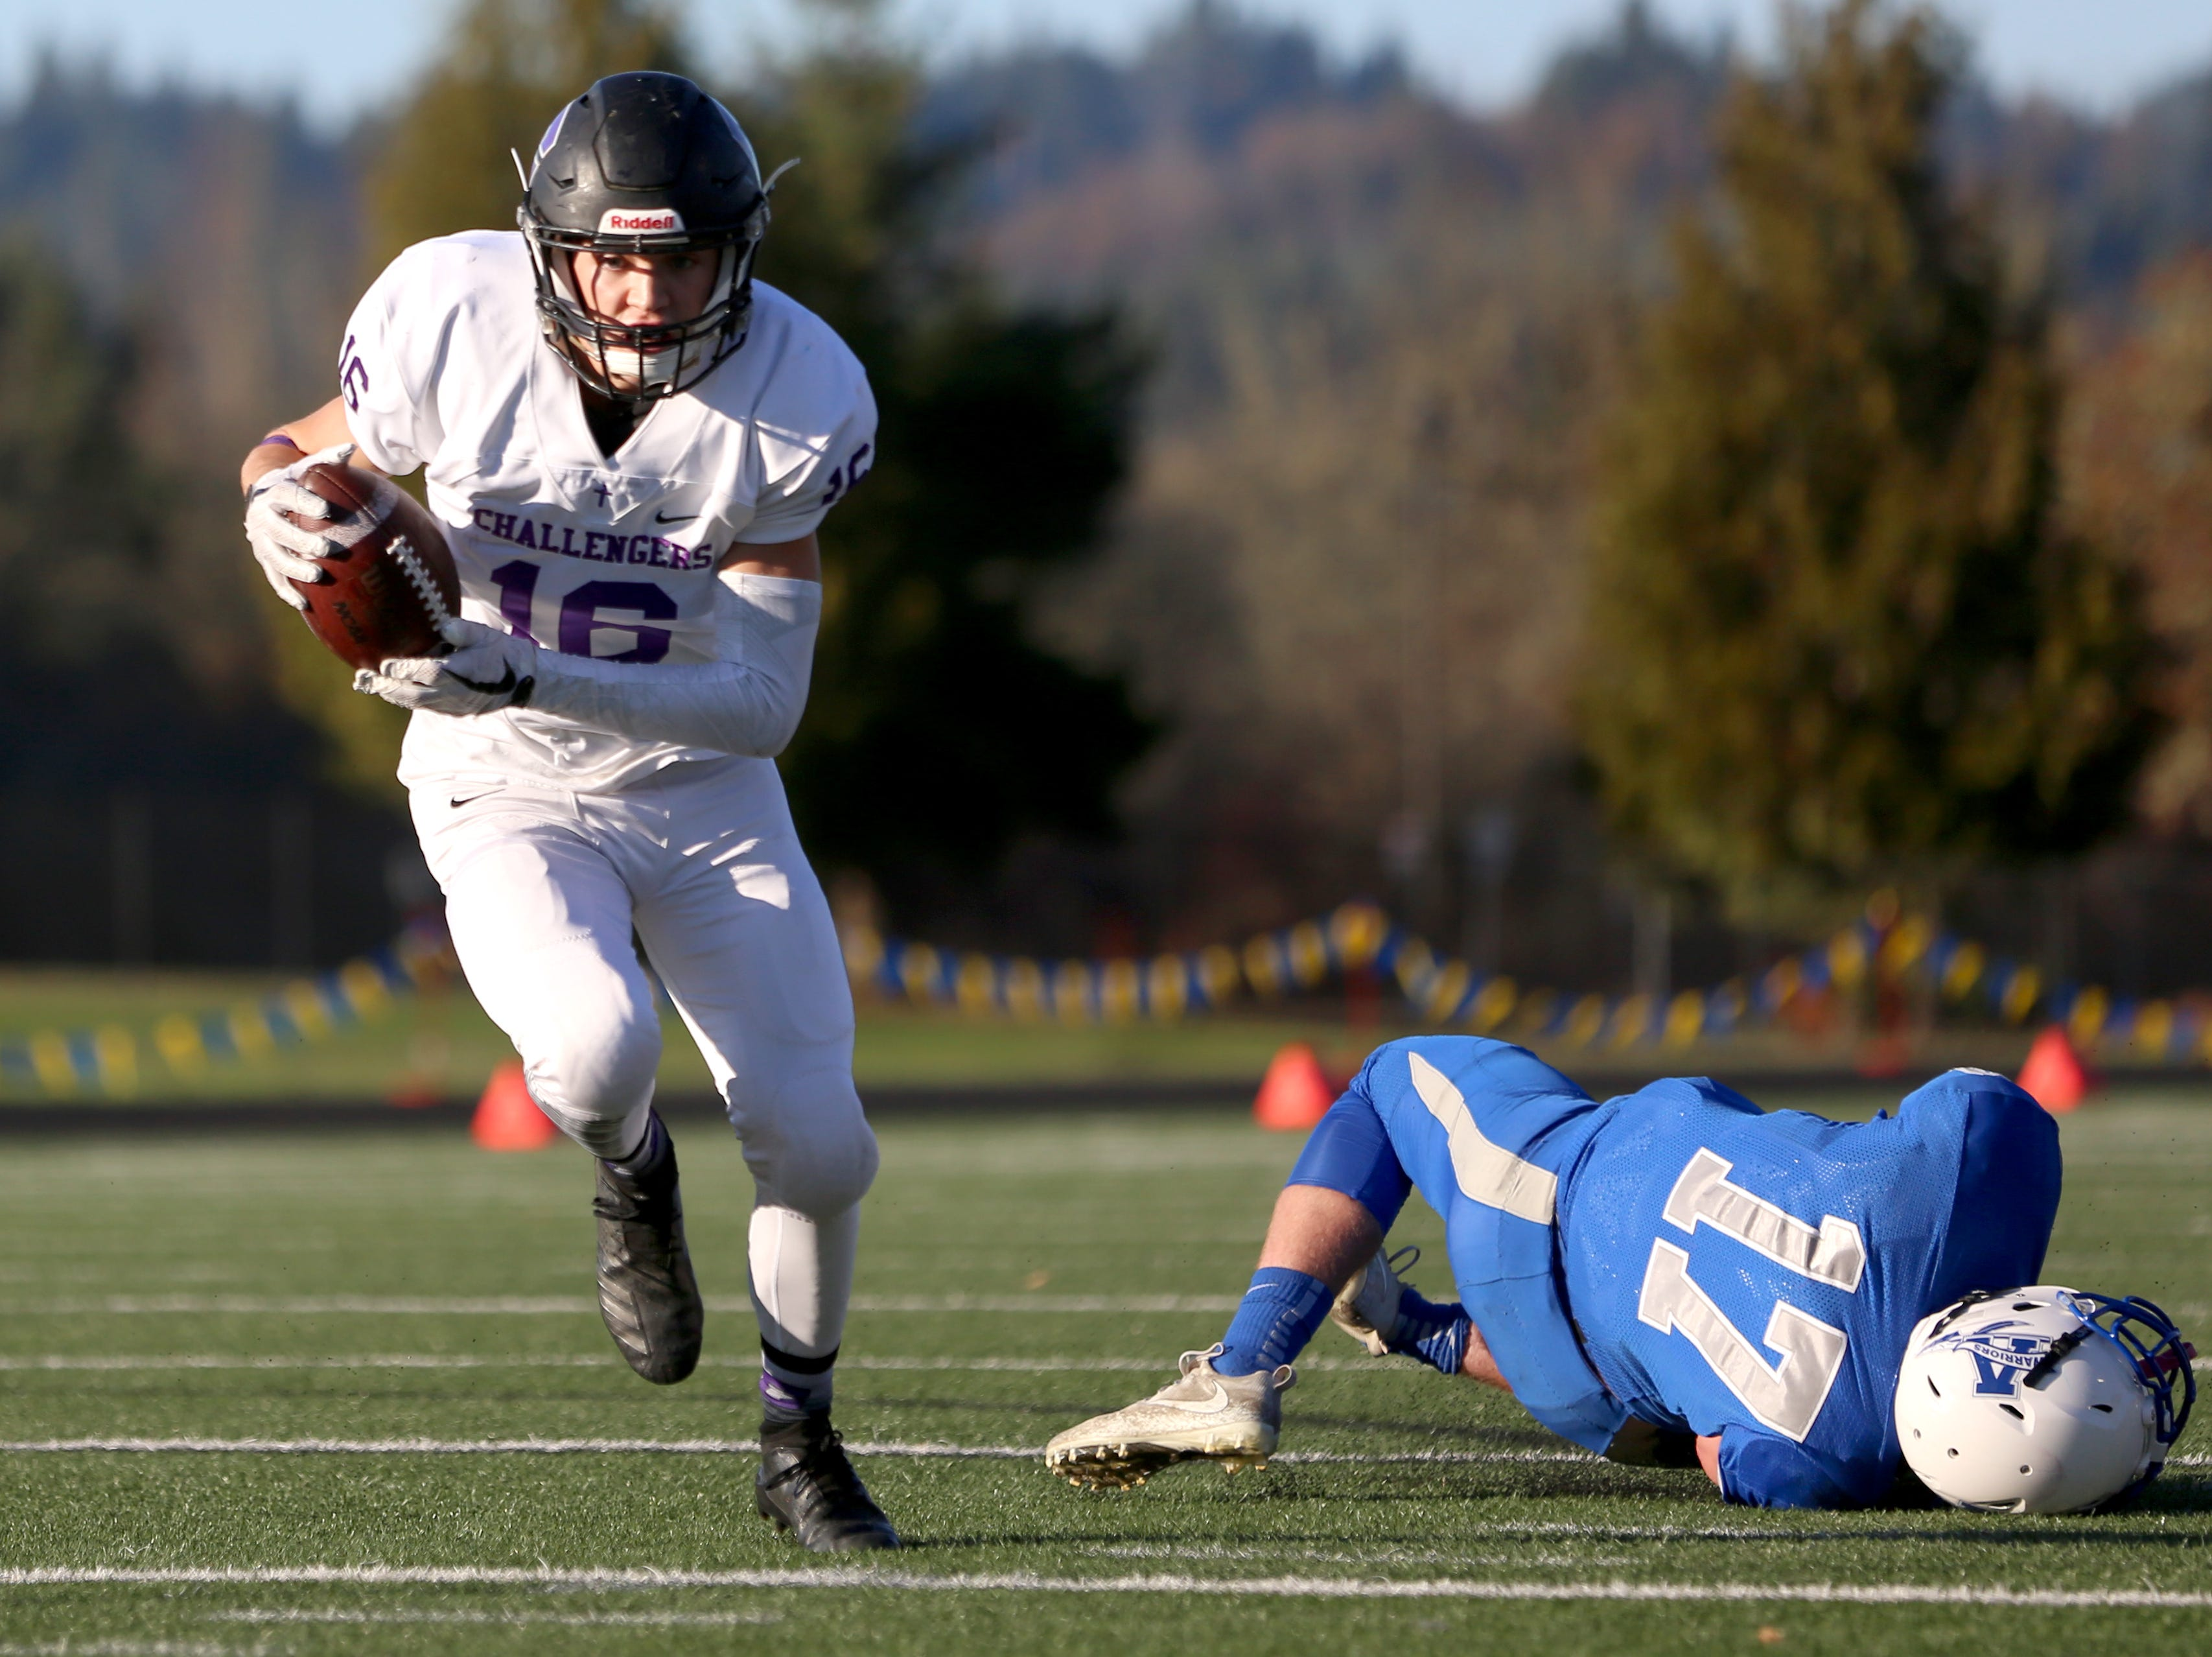 Cascade Christian's Cade Sample (16) rushes during the OSAA 3A semifinal Amity vs Cascade Christian football game on Saturday, Nov. 17, 2018 in Cottage Grove.